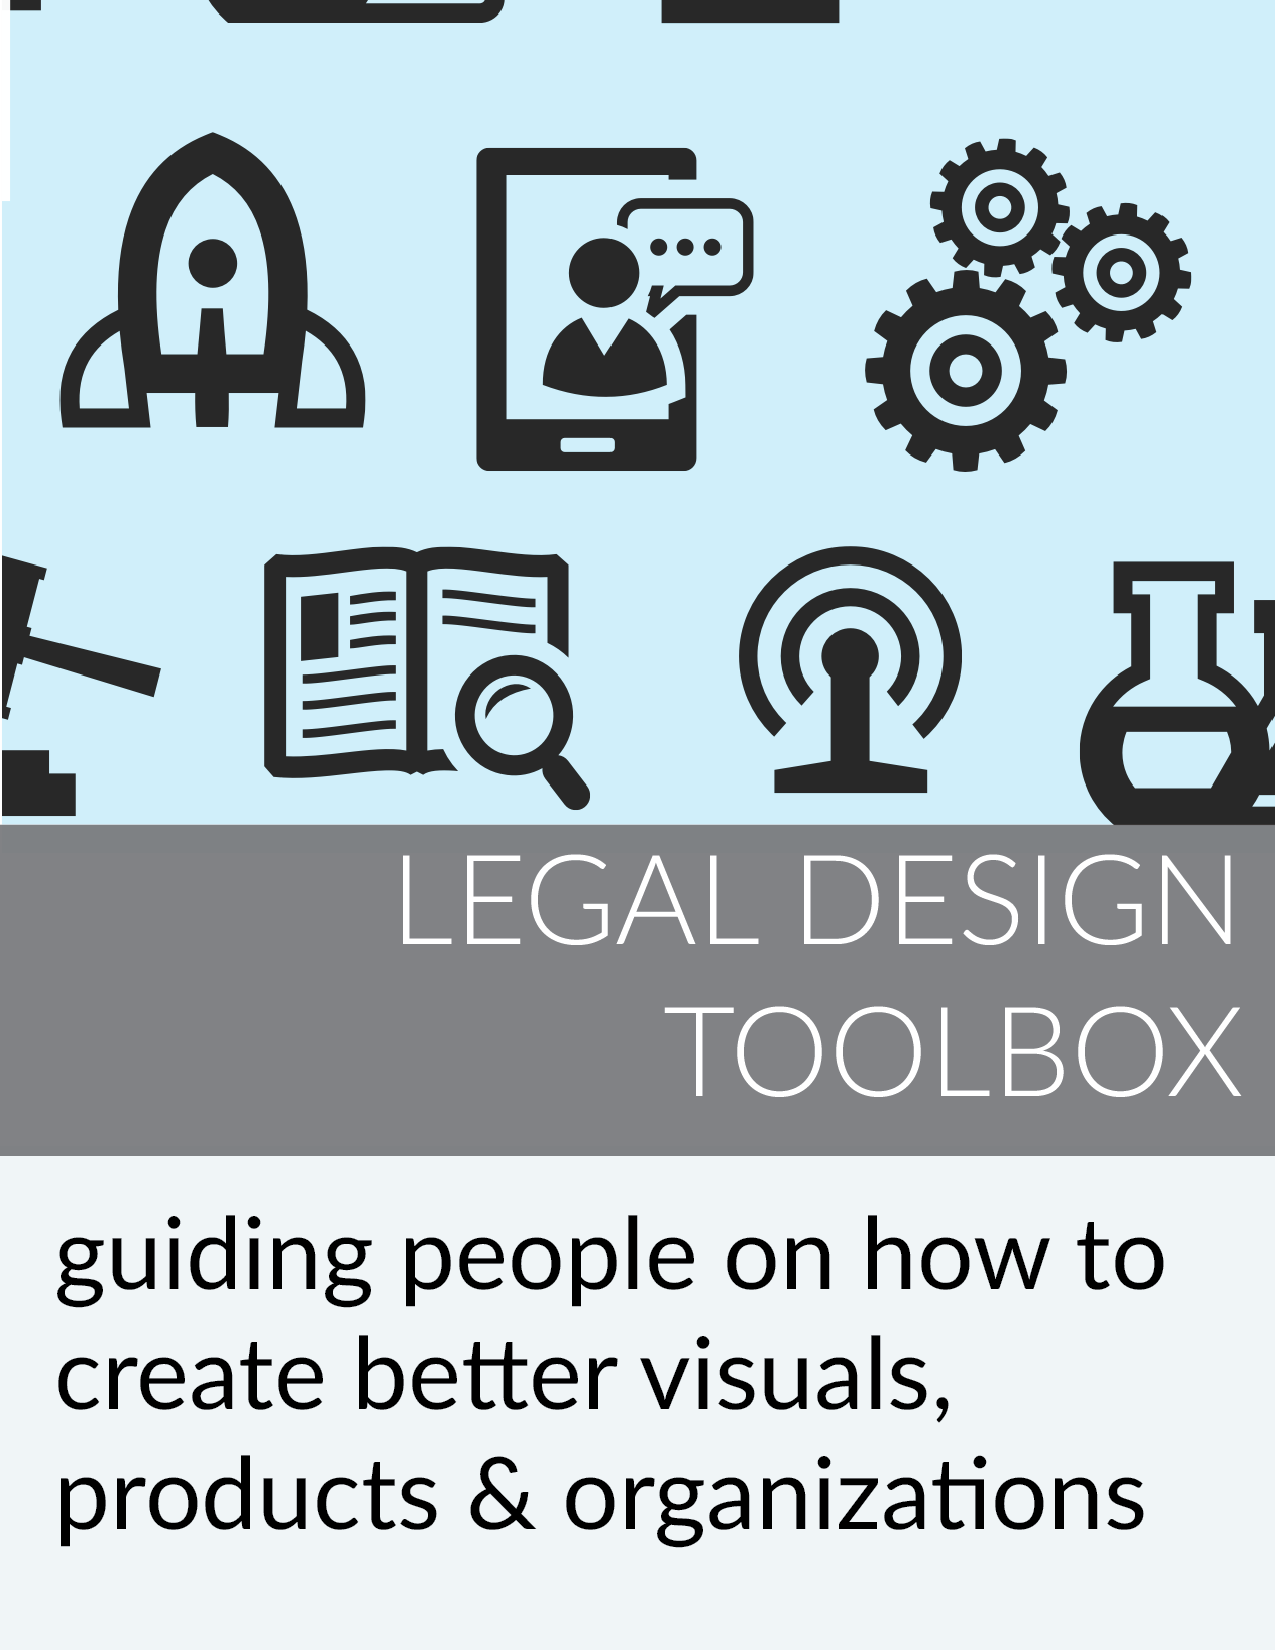 Legal Design Toolbox